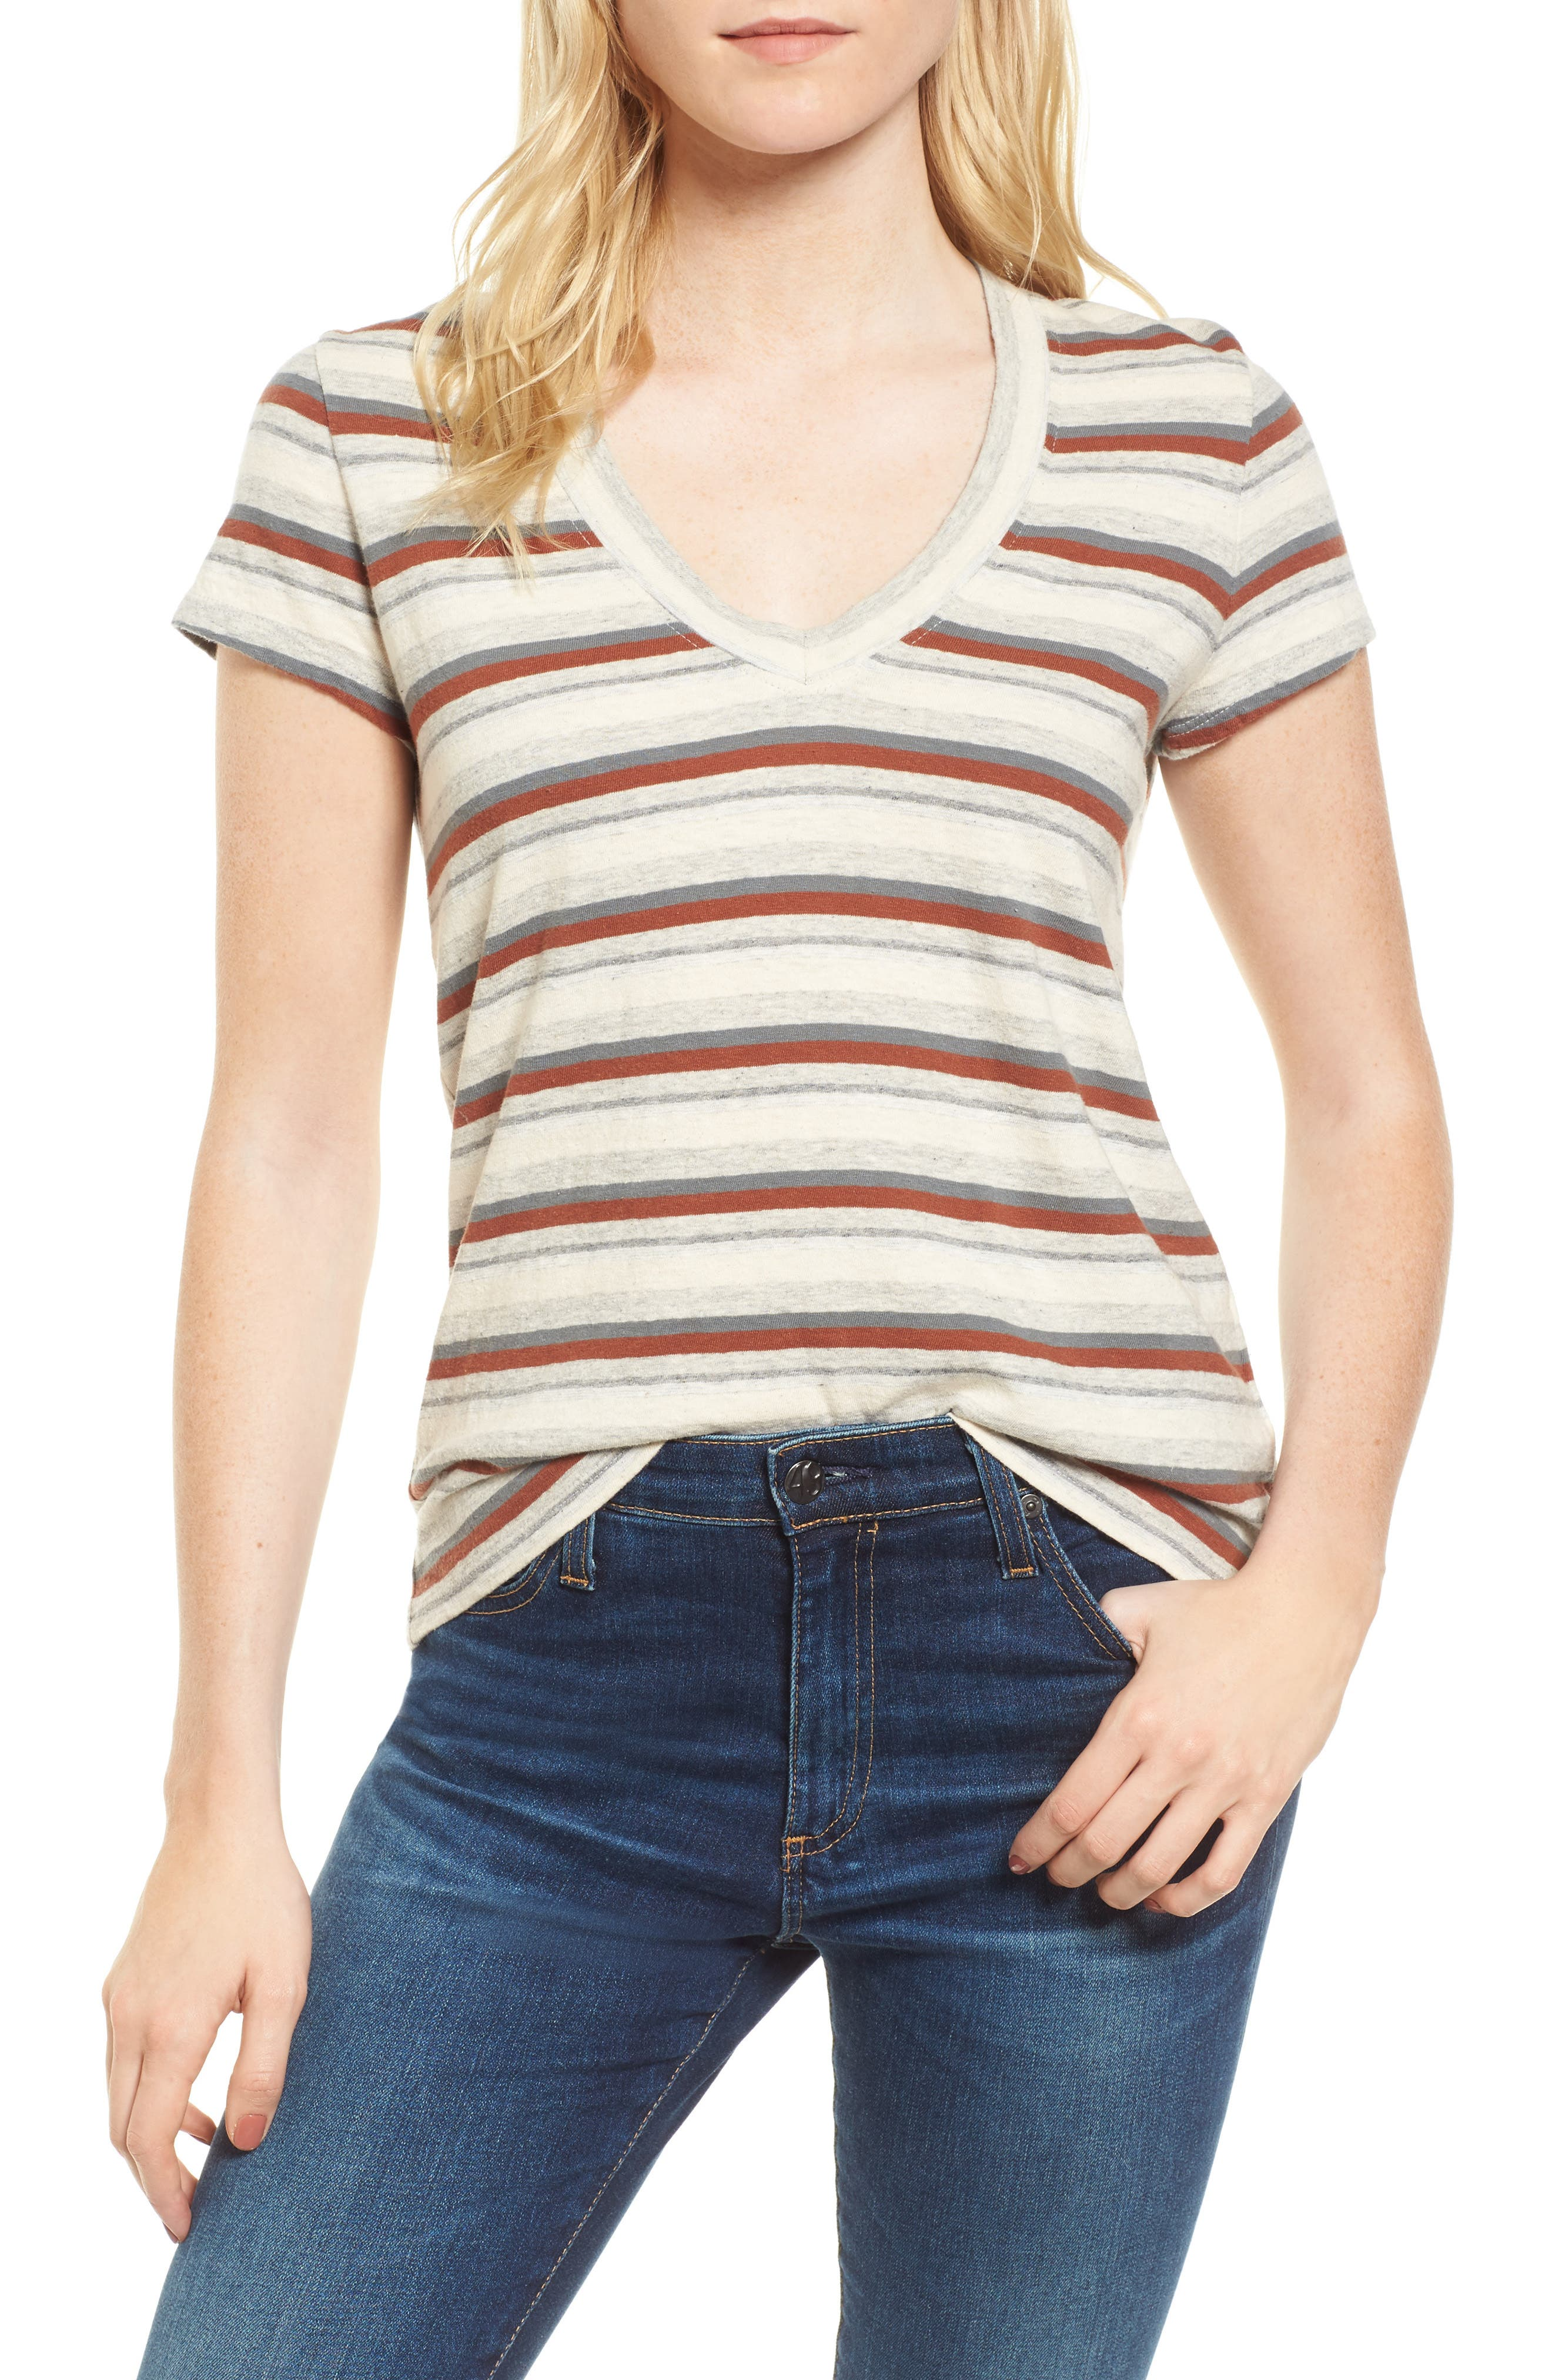 Alternate Image 1 Selected - James Perse Stripe Tee